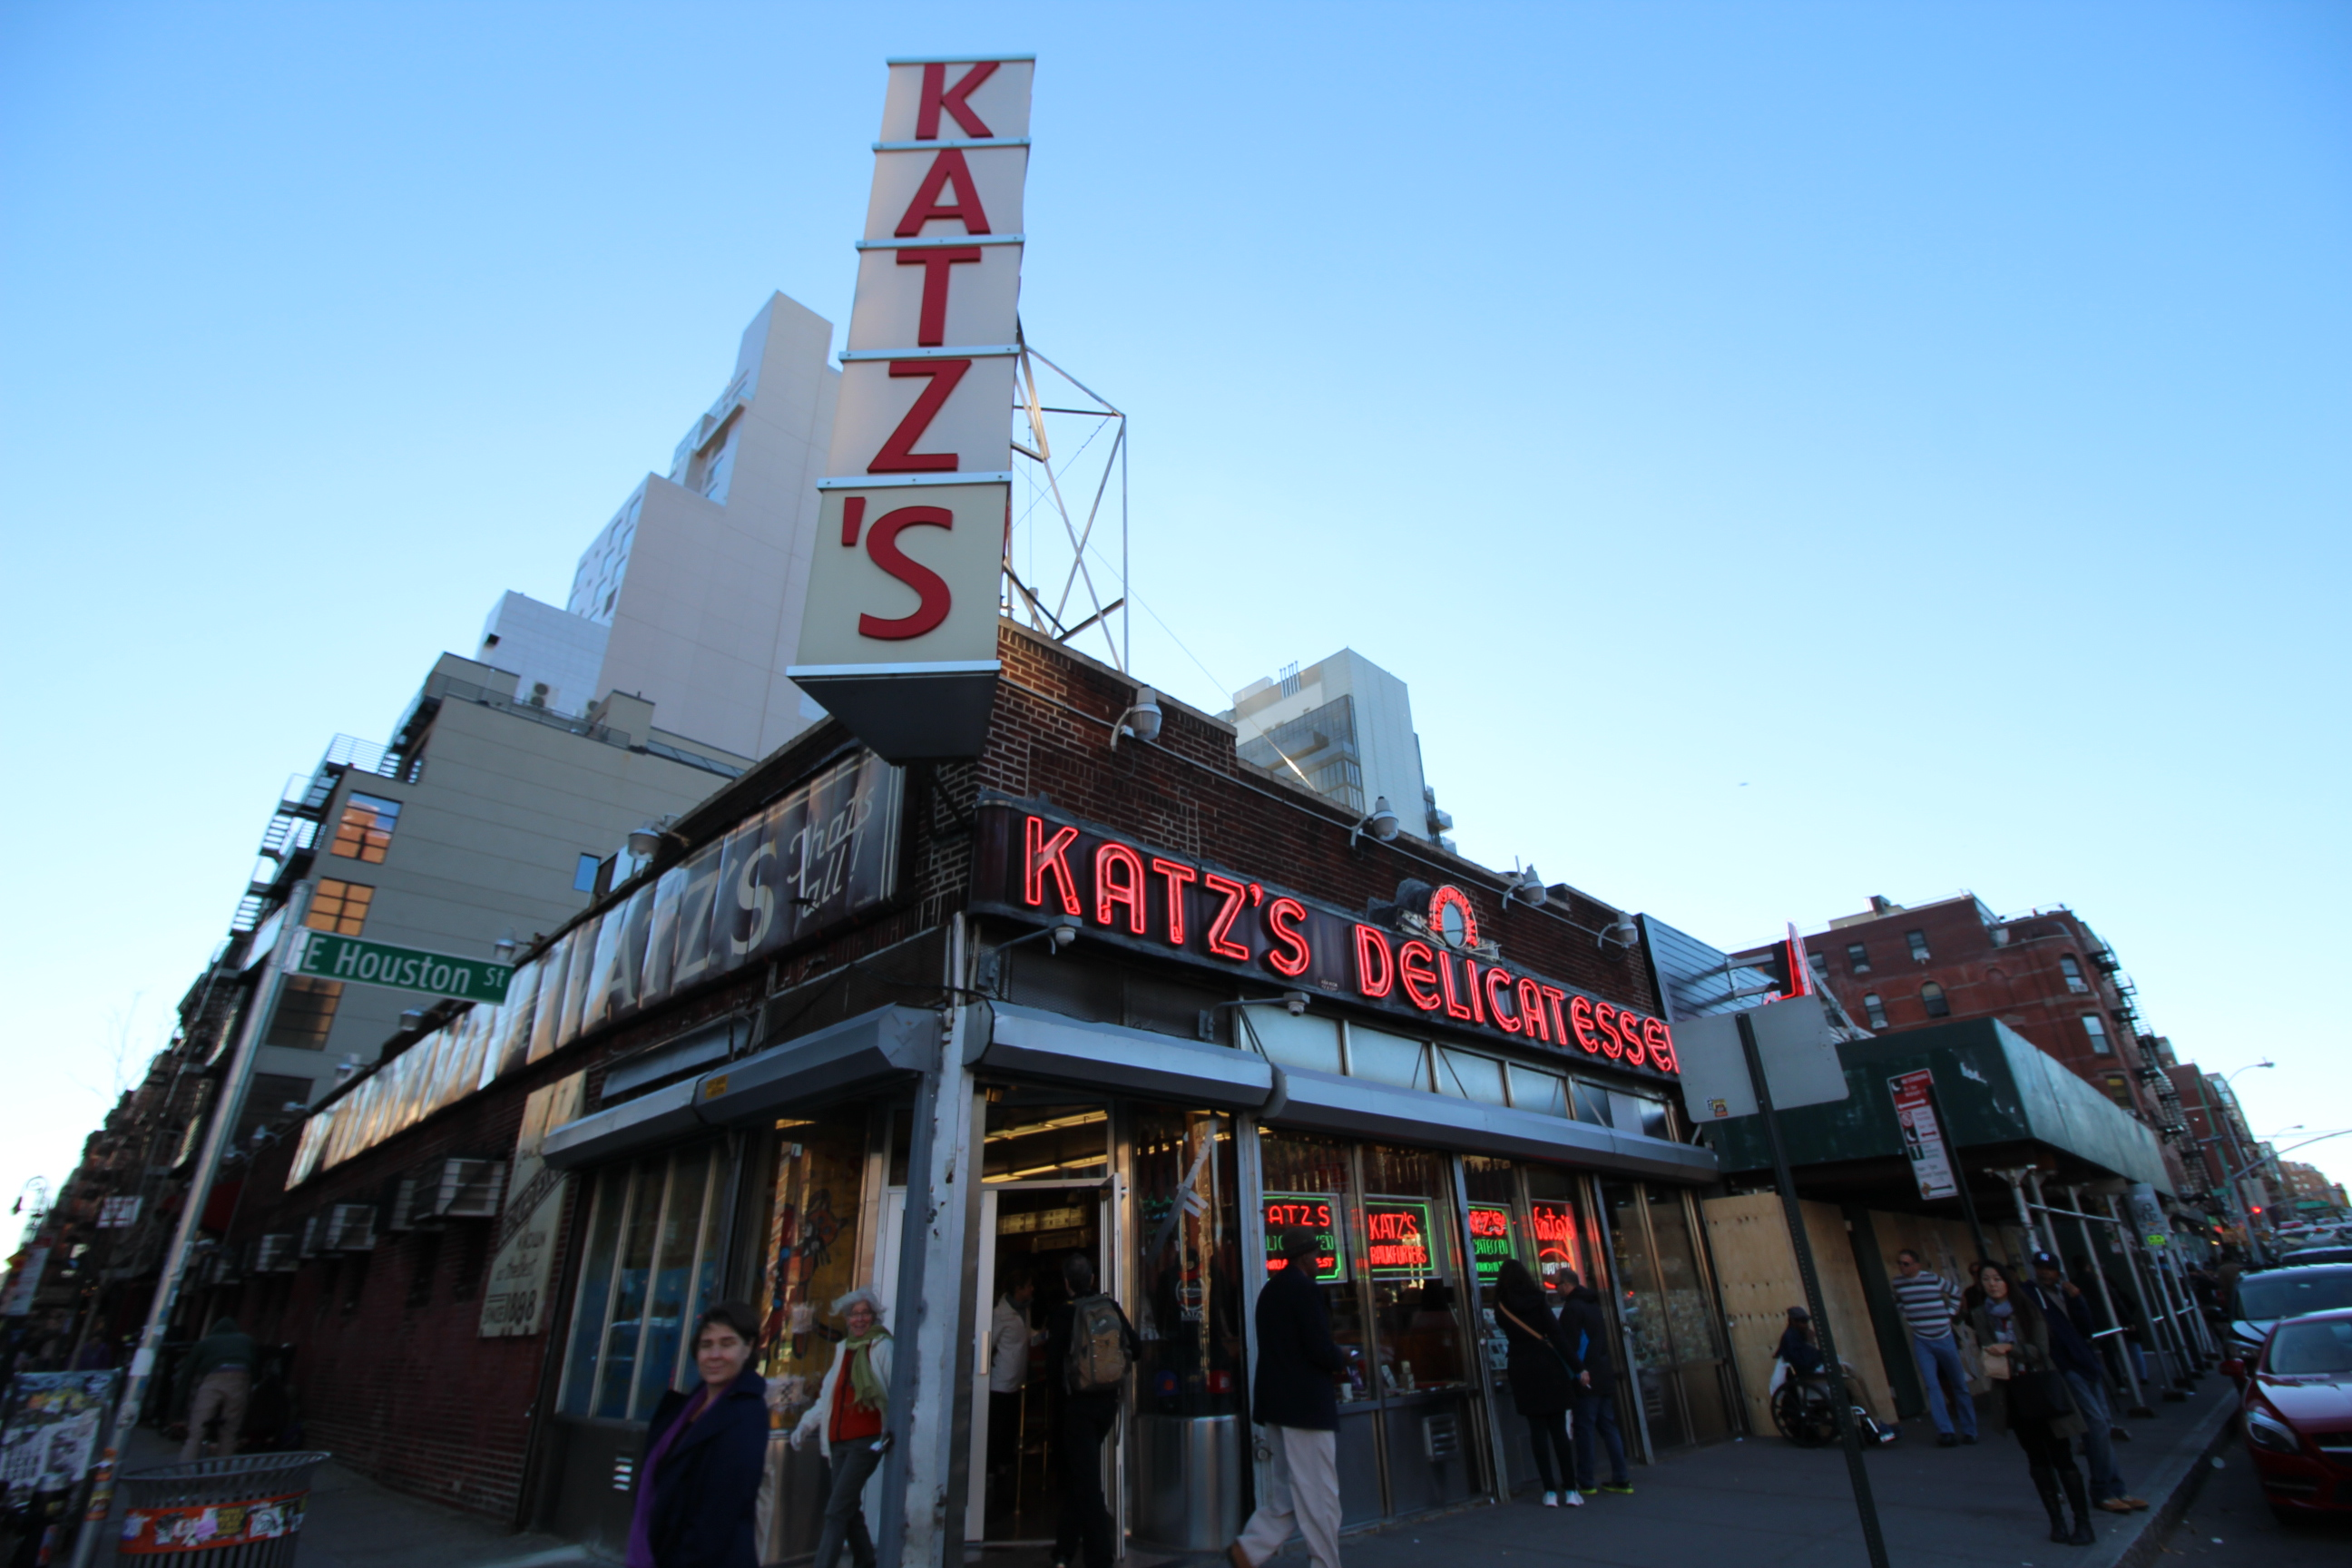 "Katz's Delicatessen, October 30, 2015. Credit: <a href=""https://www.flickr.com/photos/shinyasuzuki/22633084081/in/photolist-Au1tnB-ArPEao-AqHuV3-zb6EU2-zLa36Z-zHxH5K-ySZgiL-rnJsAV-rE5zNY-qHbDu5-roaYhL-rjFMwm-AqHuLf-AbpFs9-AbpFhQ-AqHuv5-Au1itZ-zw8h3g-zvYVWG-zBJMeh-zGWz2L-zsDYDf-yHp8BQ-zErnXv-znVo5V-xxfdLu-xy7vfd-w1X7Yy-udzYXm-tKVhGC-tDwVqP-tDoxrd-sWYuZd-tTRxJX-tTRwCV-tTRw36-tTJbkD-t3znHq-rvsDFi-s7QjA4-rtfipr-rEFSeY-rqoShy-rqwx1x-rhaZvg-rywdwc-qBCvNh-rwktU5-ryC3kH-rh3CTY"">Shinya Suzuki/Flickr</a>"